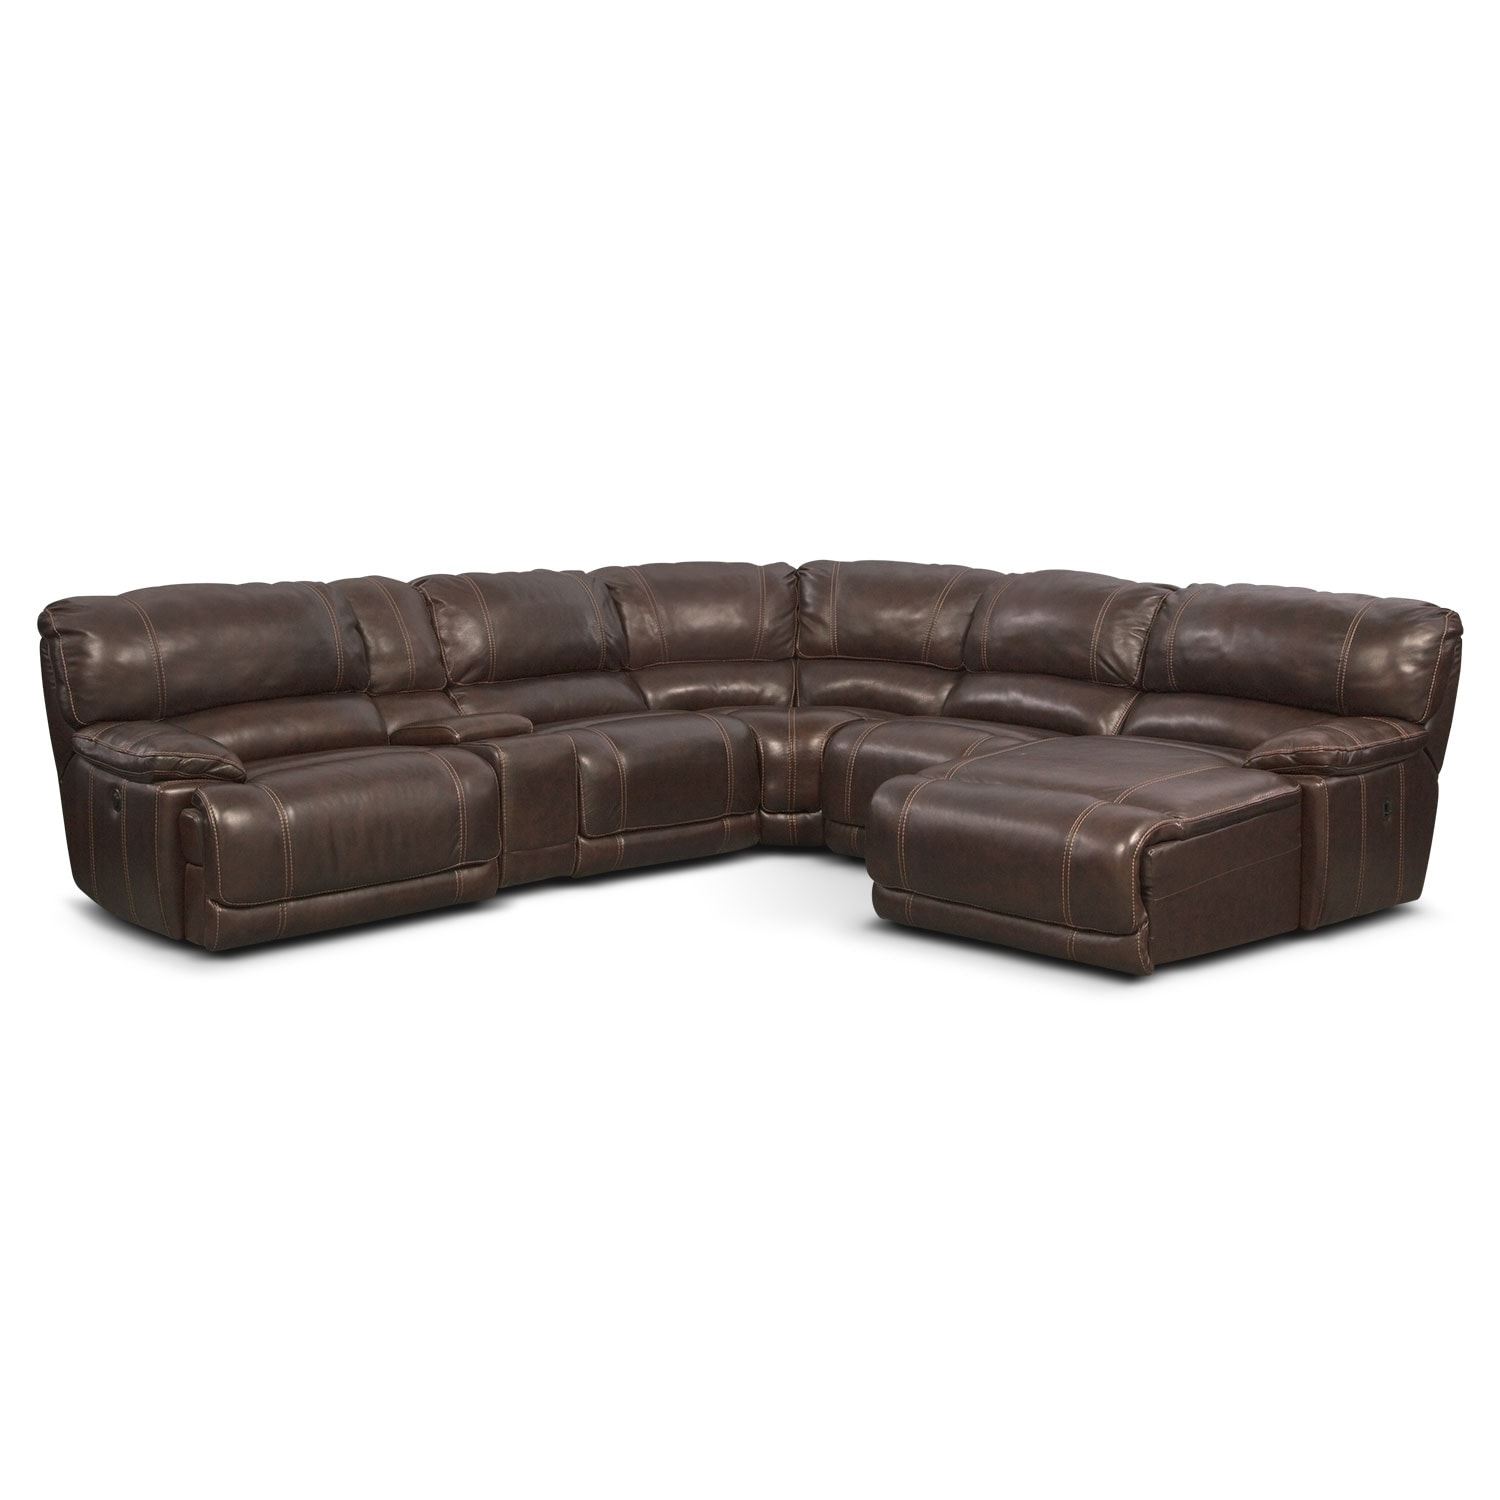 Living Room Furniture - St. Malo 6-Piece Power Reclining Sectional with Right-Facing Chaise - Brown